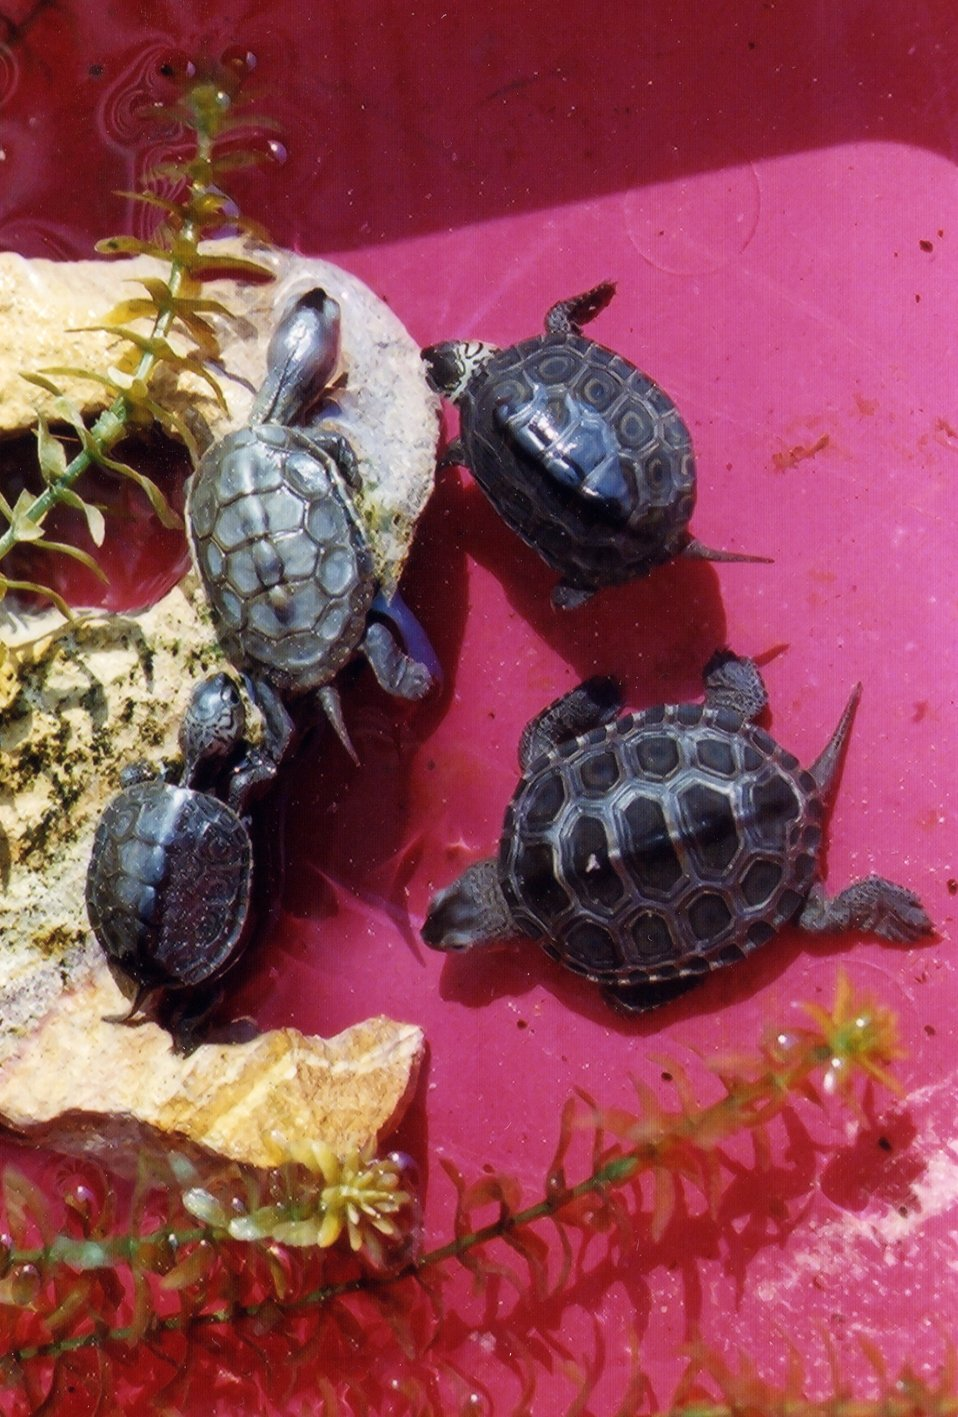 Baby terrapins from the same year class having various sizes, shapes, and markings.